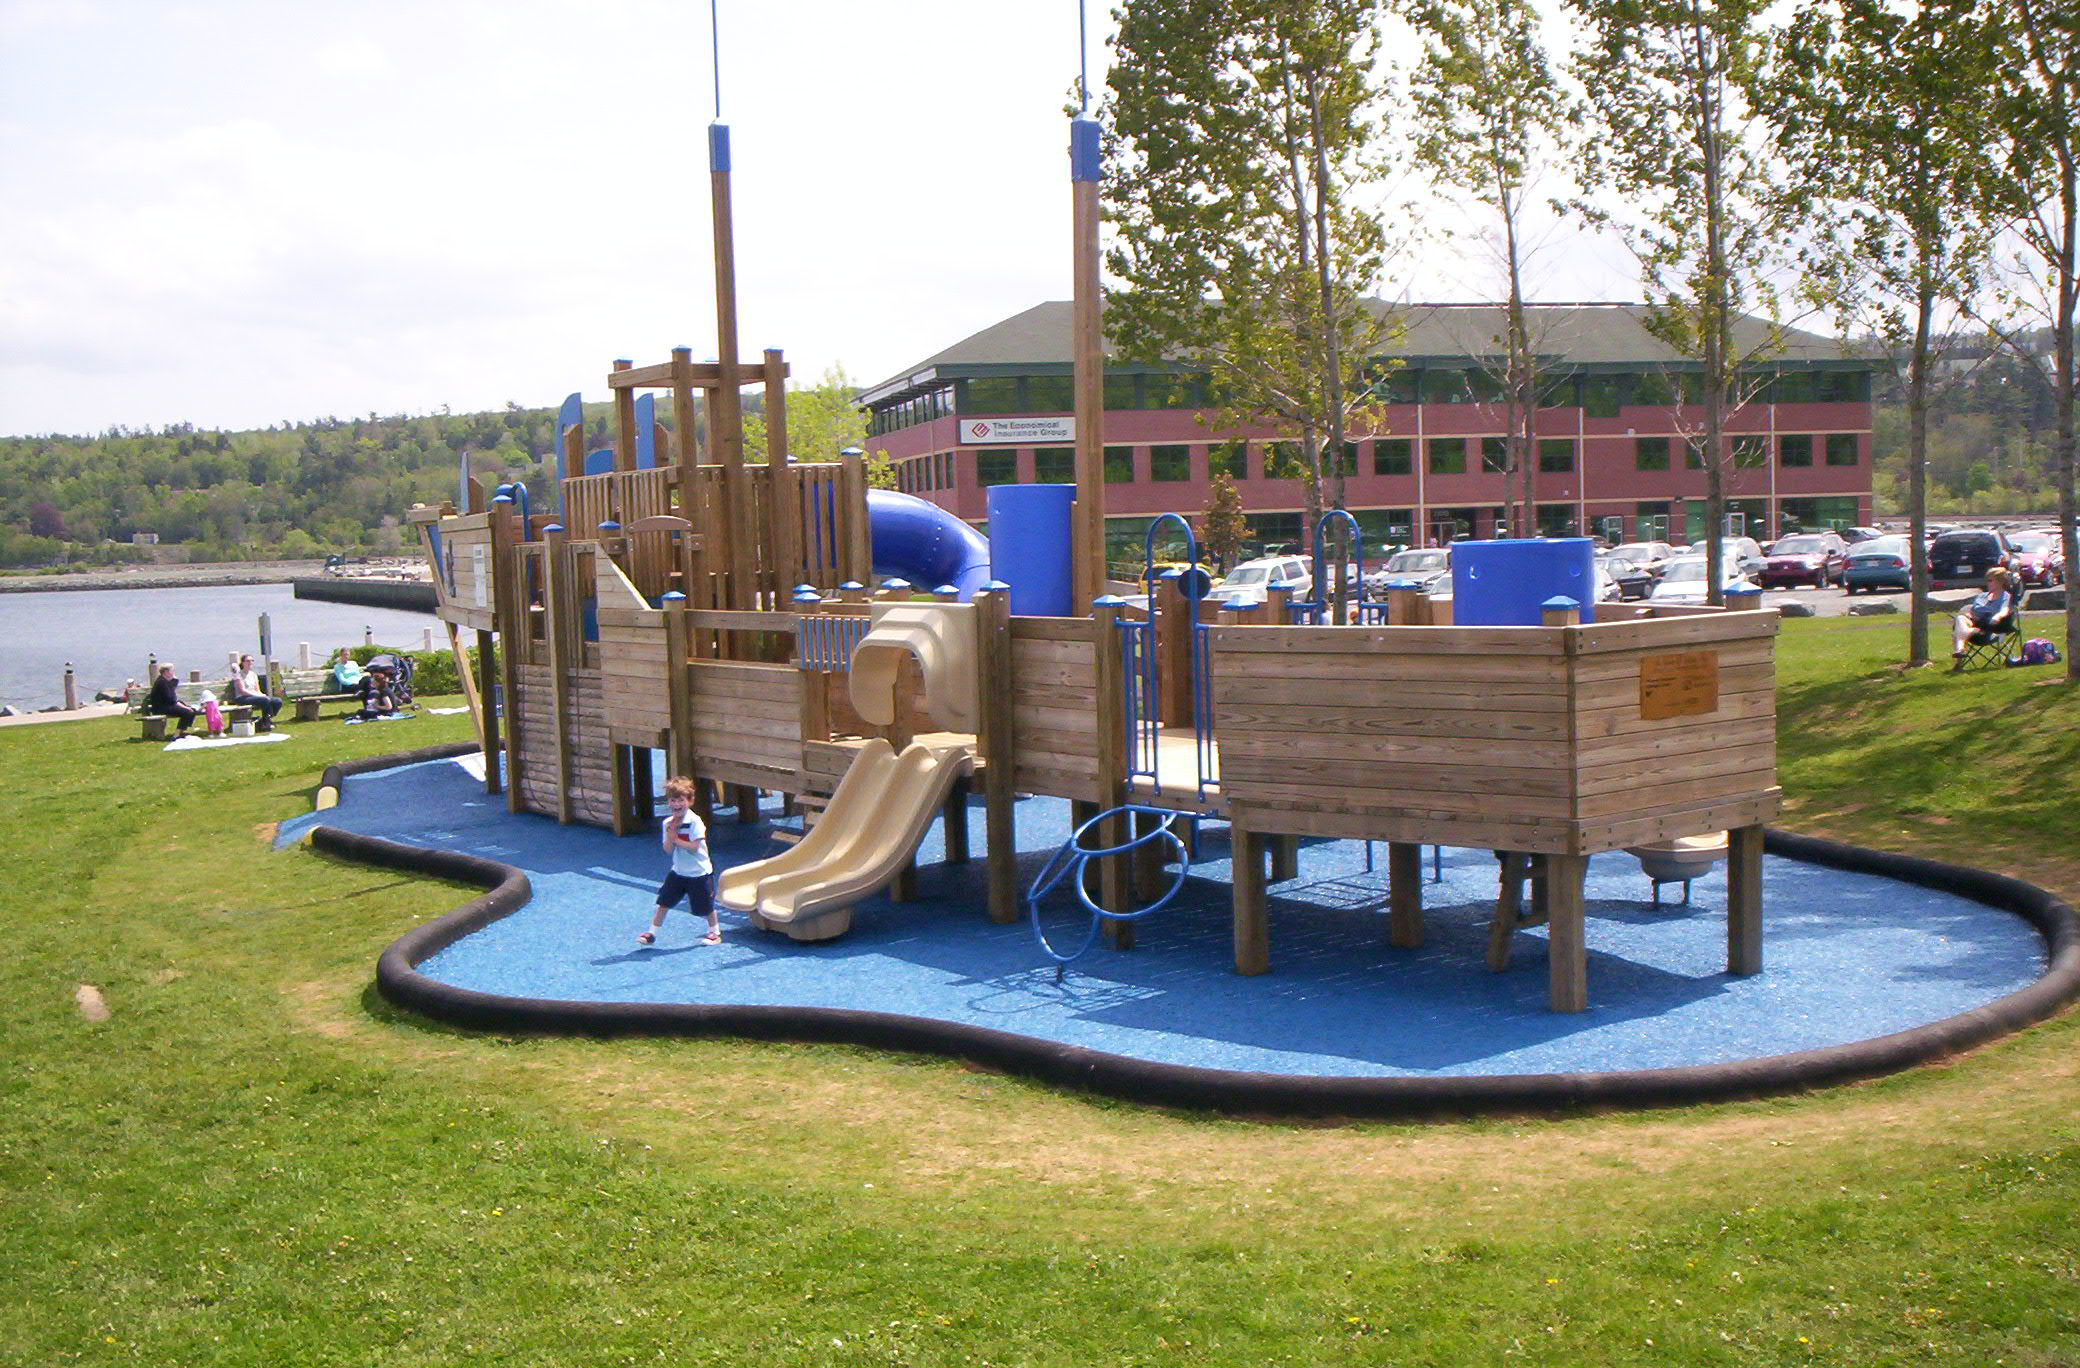 Playground Rubber Containment Barriers SportsEdge